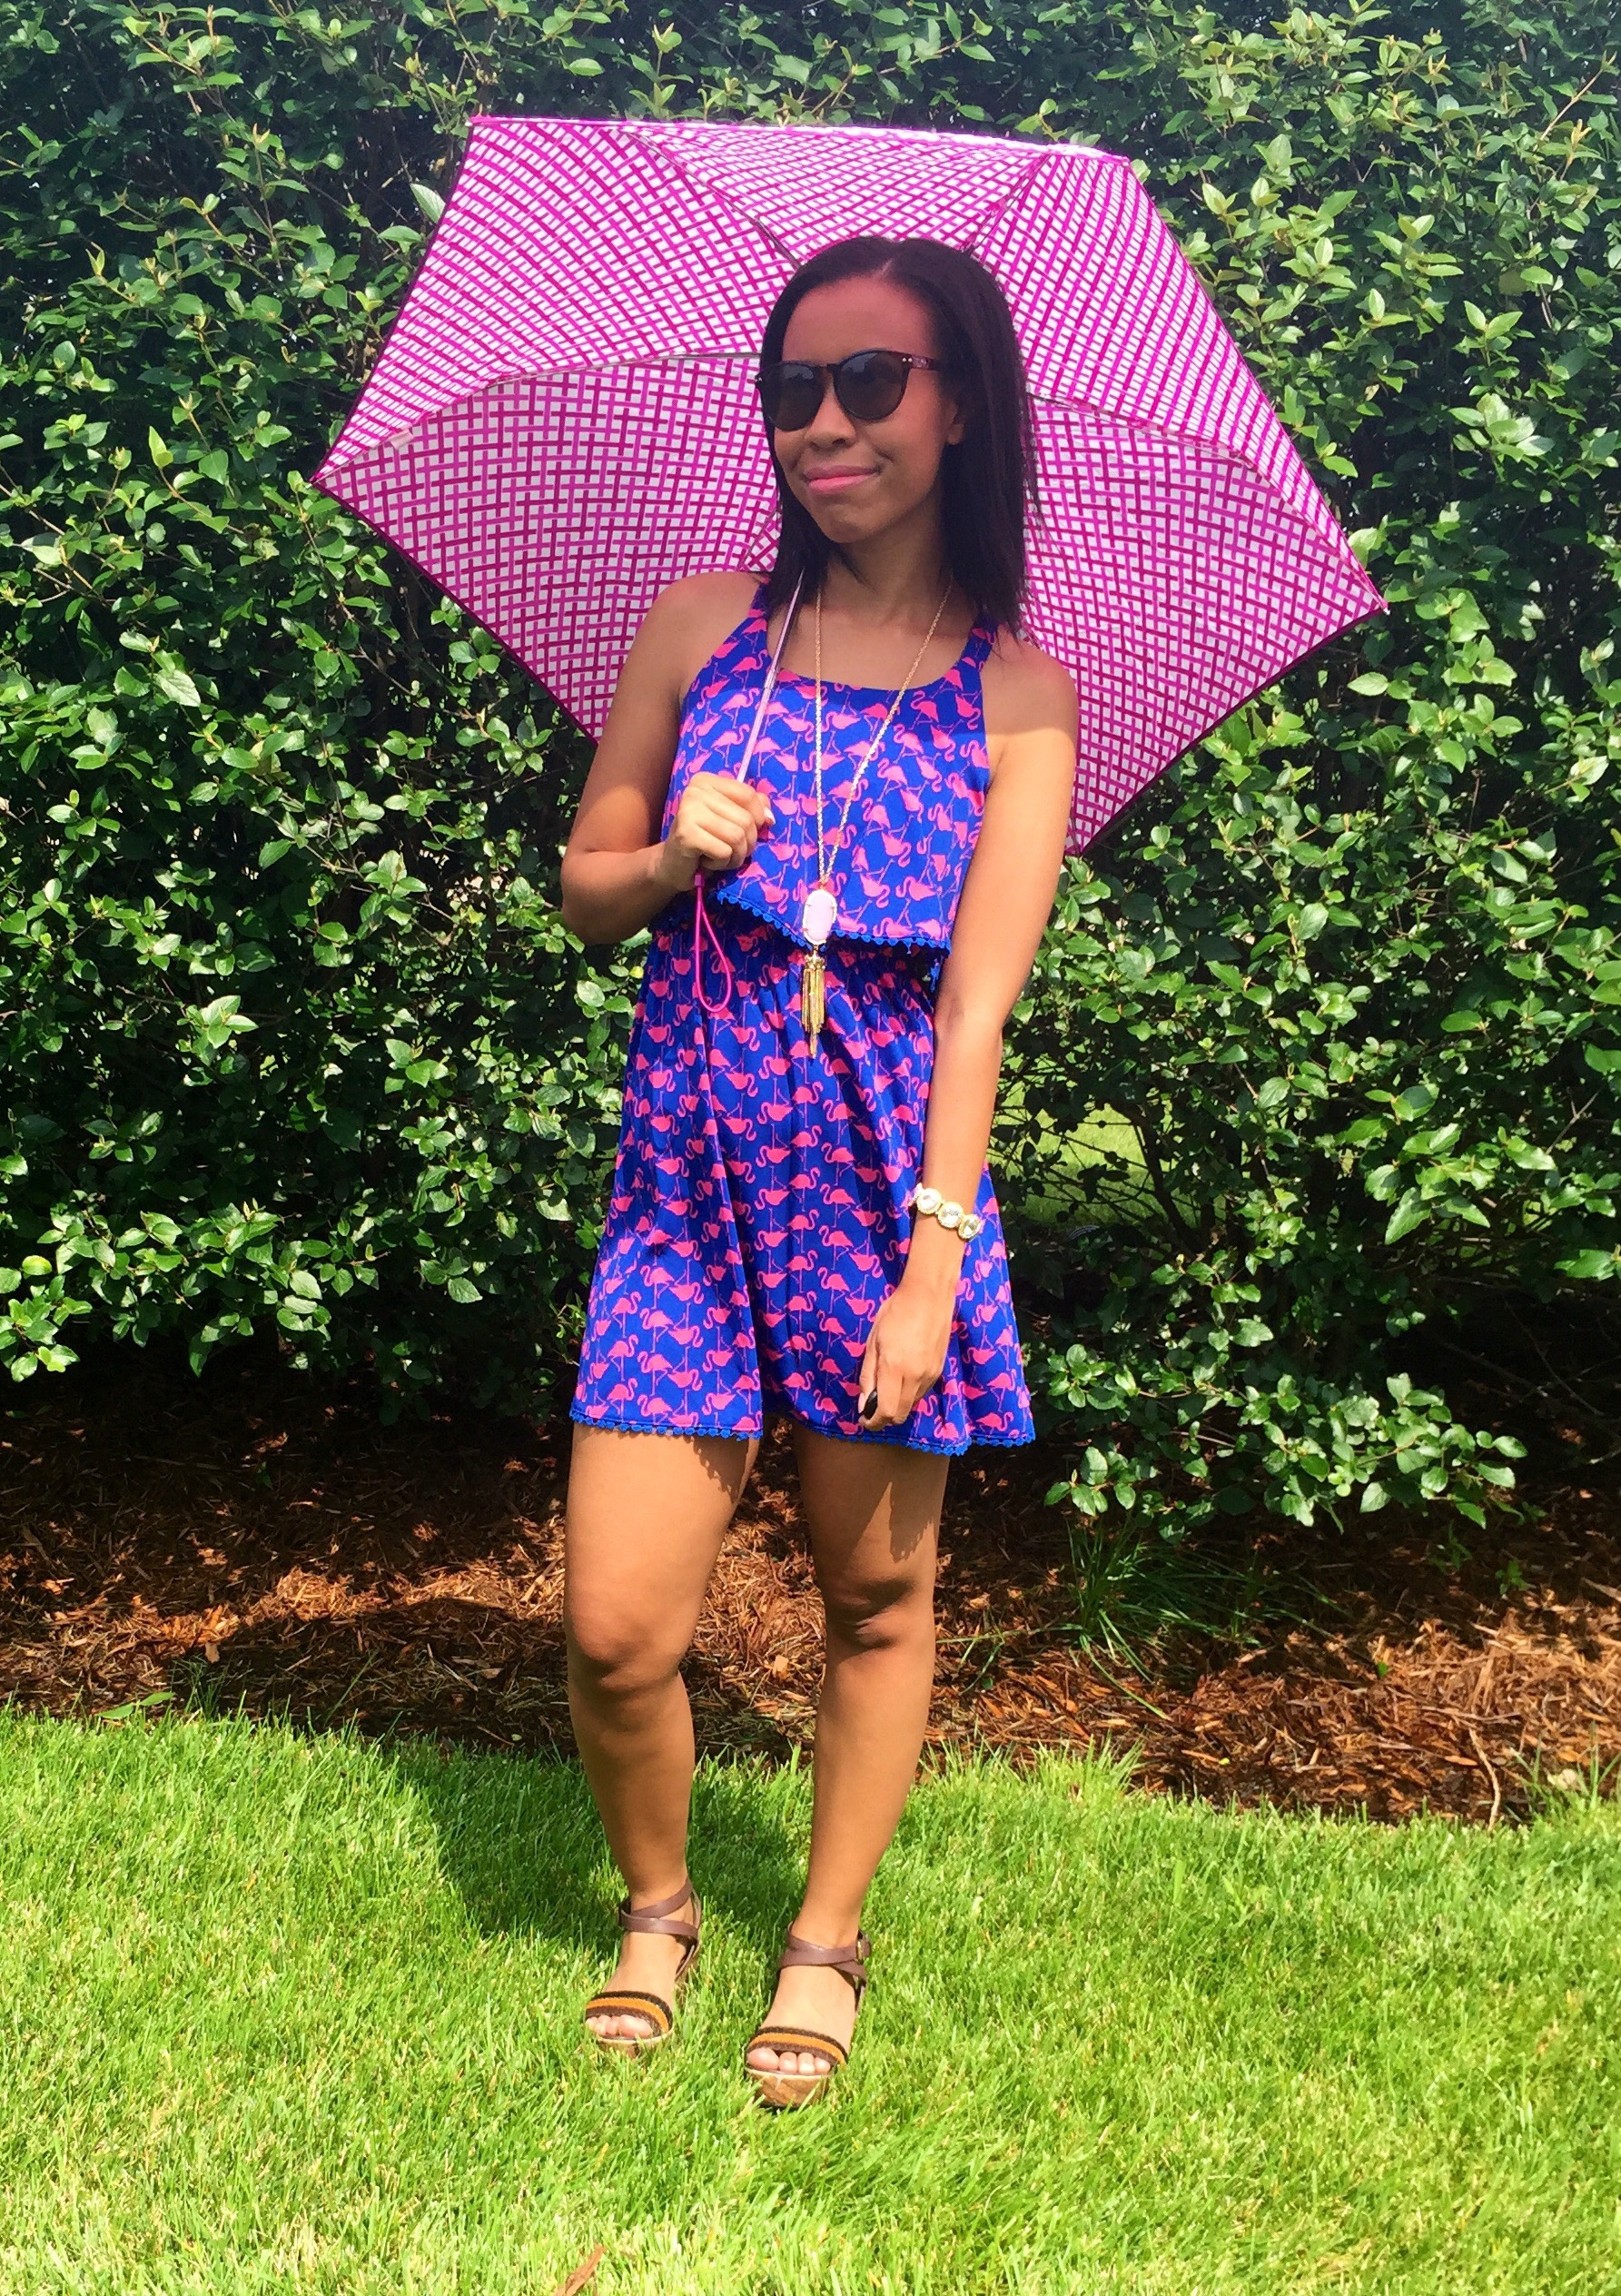 vera bradley umbrella {sold out, different colors} + hm sunglasses + midnight girls tassel necklace via living social + target girls dress {similar in women's size} + versona bracelet + target style wedges {old, similar}